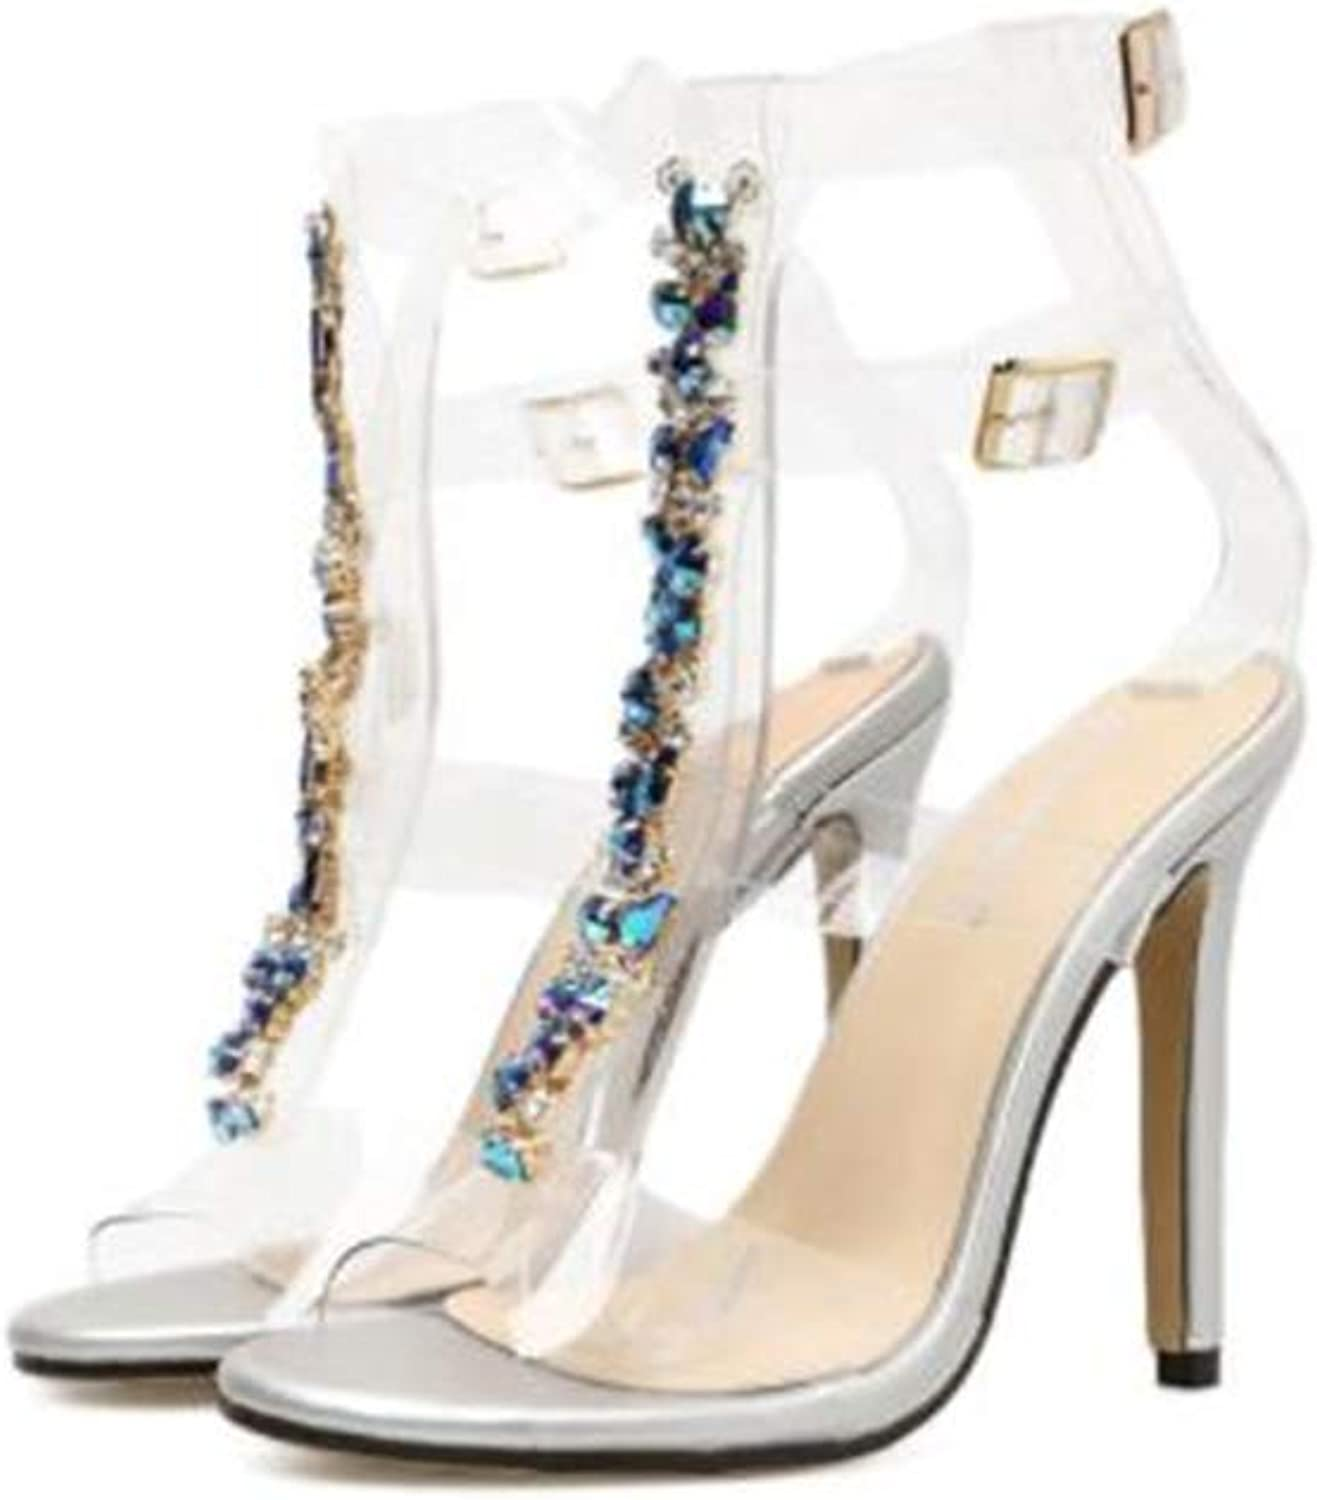 F1rst Rate Women's High Heel Stiletto Sandals Pumps Ankle Strap Open Toe Dress Party shoes